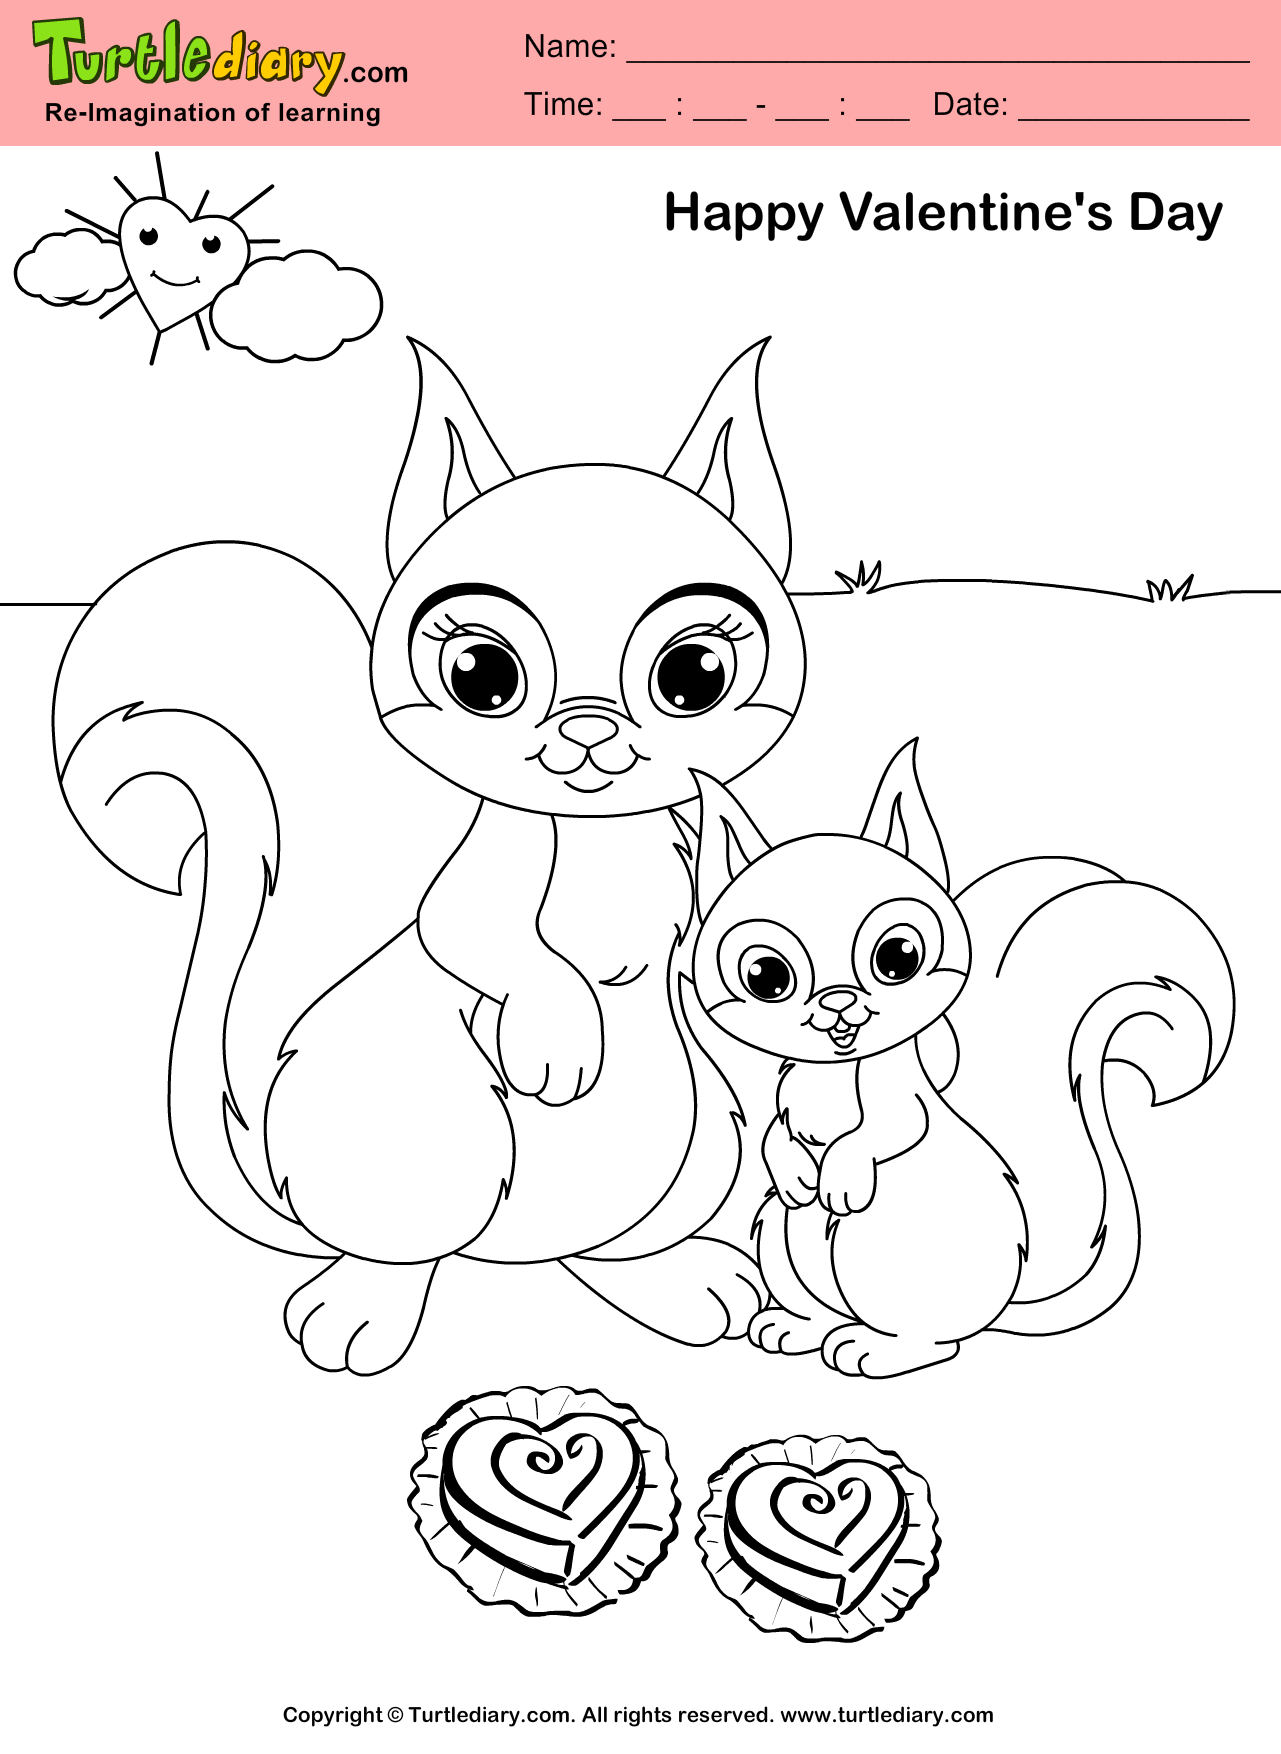 Squirrel Valentine Day Coloring Sheet